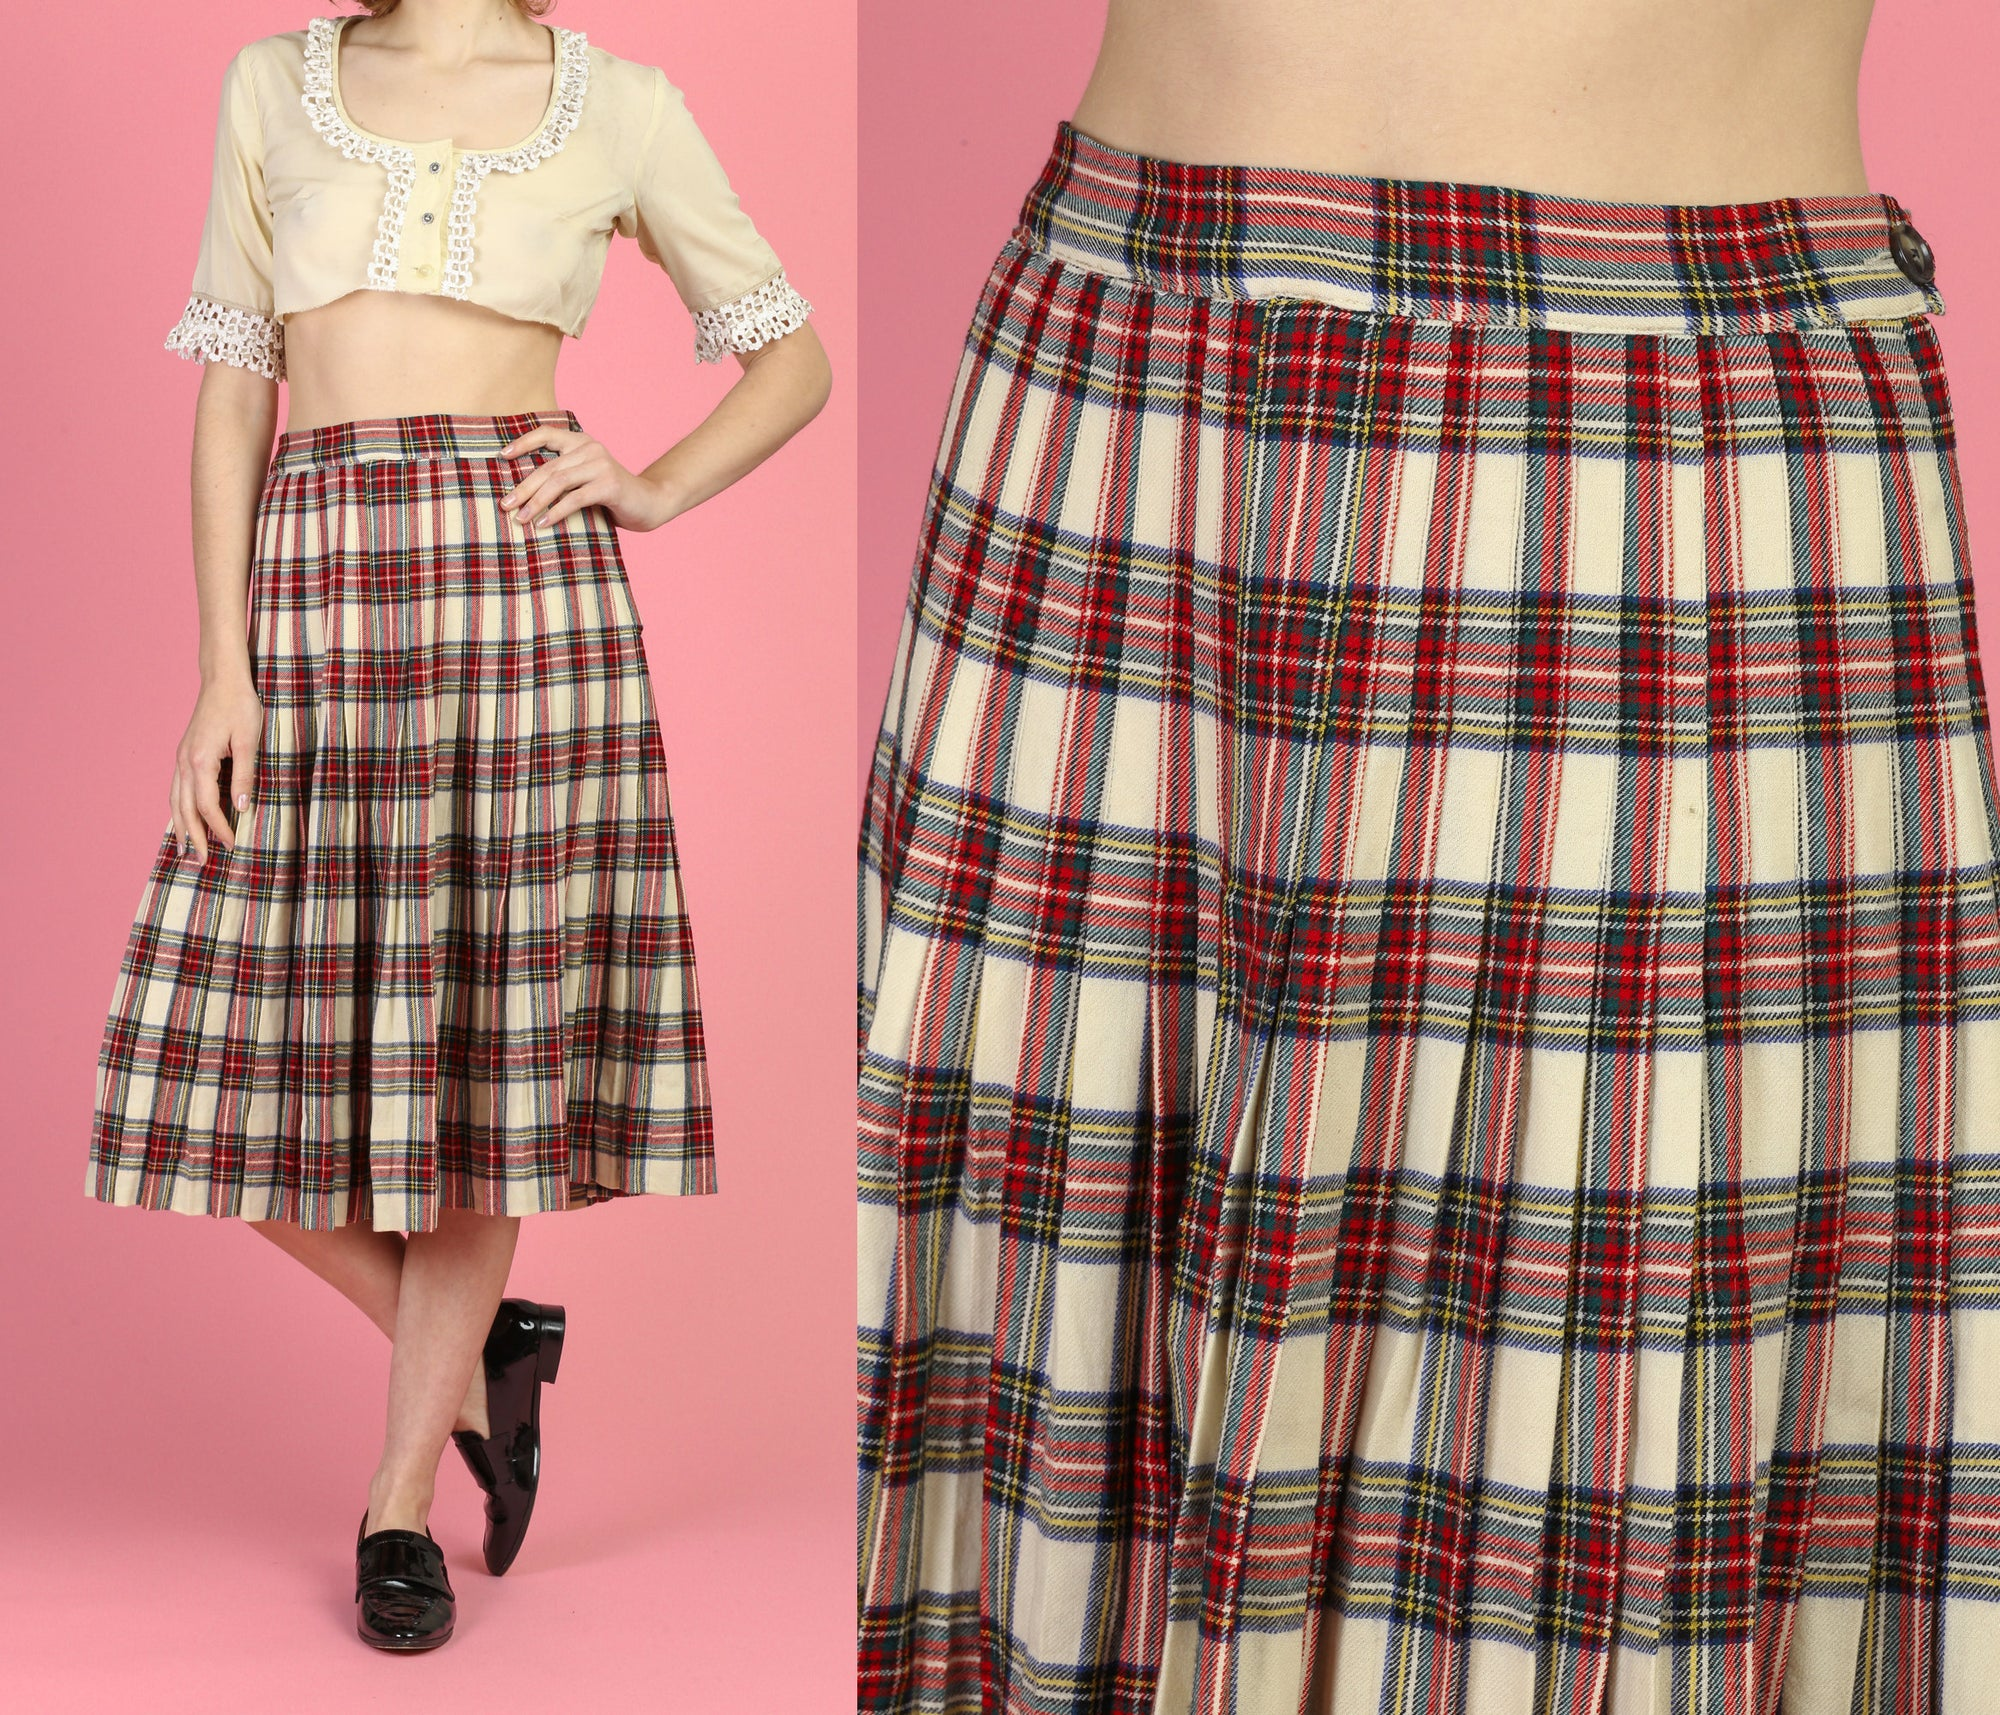 70s Plaid Tartan Midi Skirt - Medium